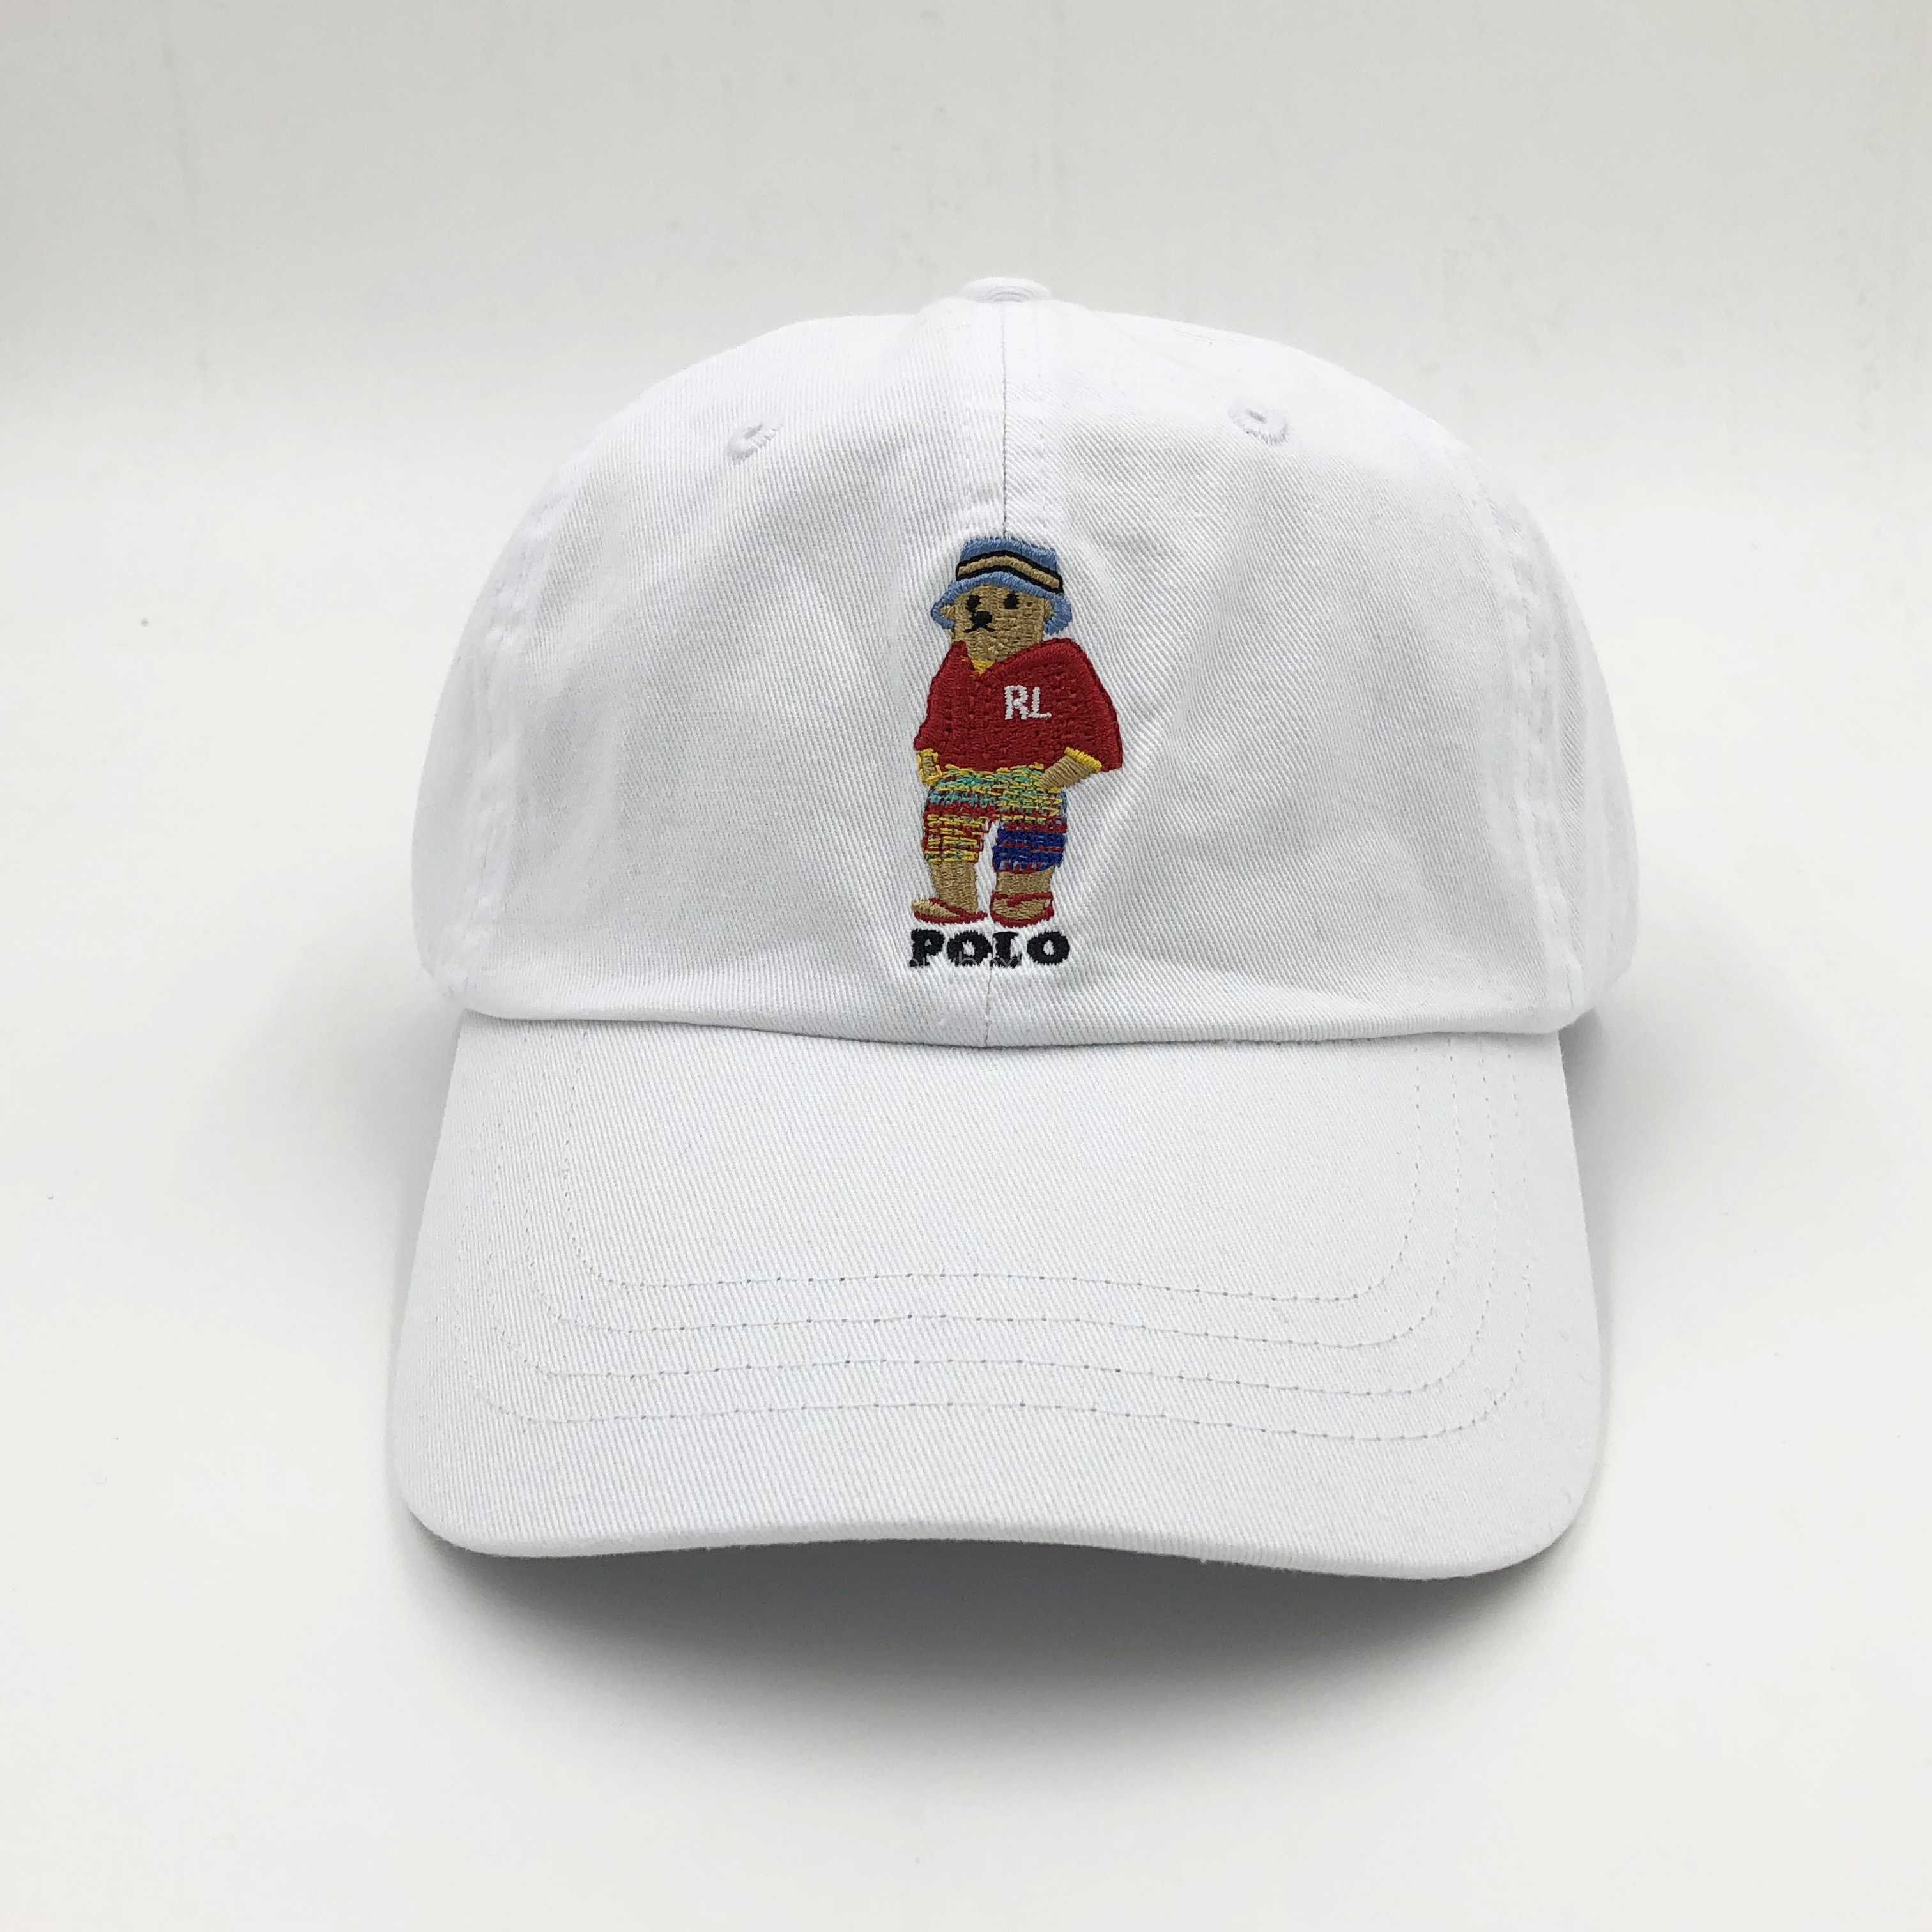 Details about LIMITED Edition Polo RL Beach Teddy Bear Logo Cap Baseball Hat  Sport Unisex New ca2f1a1672b